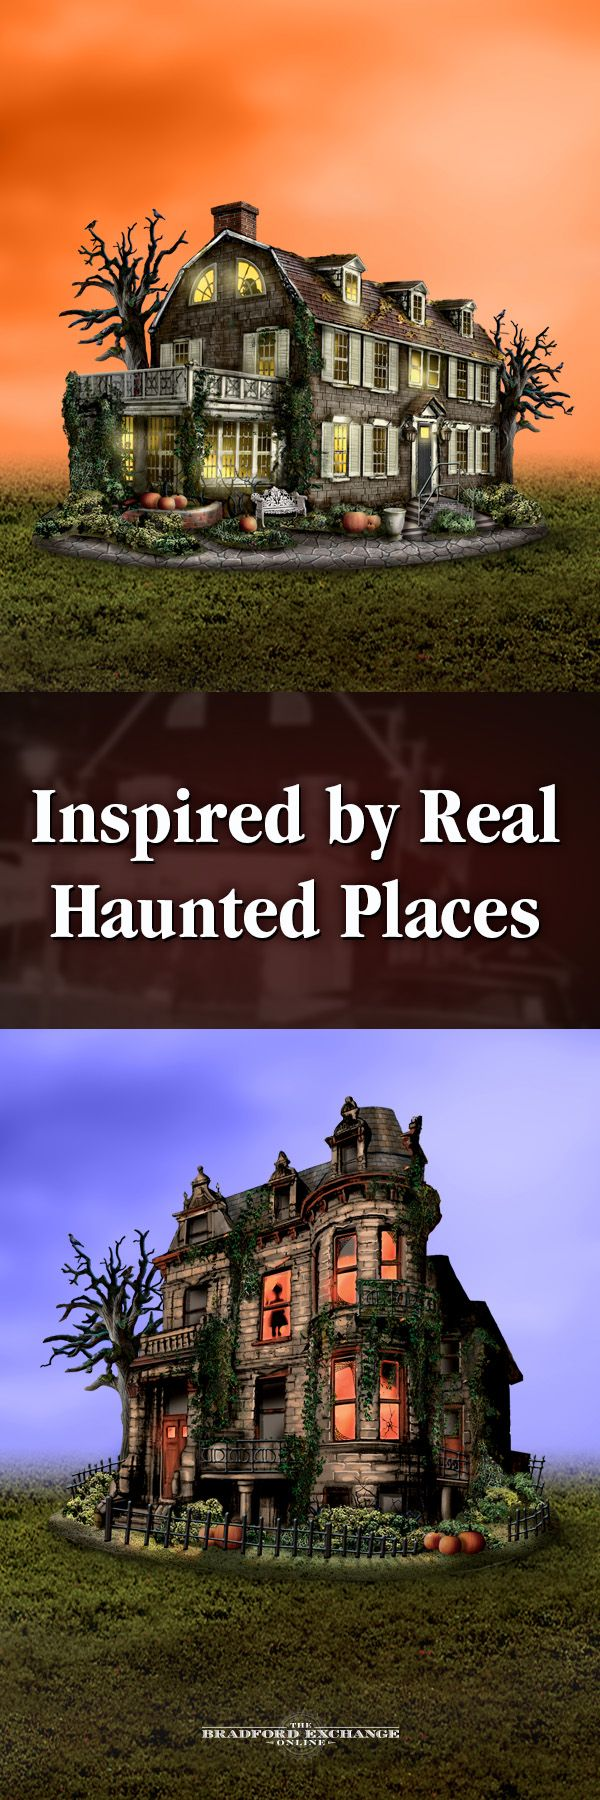 Want to visit America's most haunted places from the safety of your own home? Start your subscription to this spine-tingling village collection featuring collectible lighted buildings inspired by the Amityville House, Franklin Castle and more. Each comes with a collectible printed newspaper card documenting all of the frights.